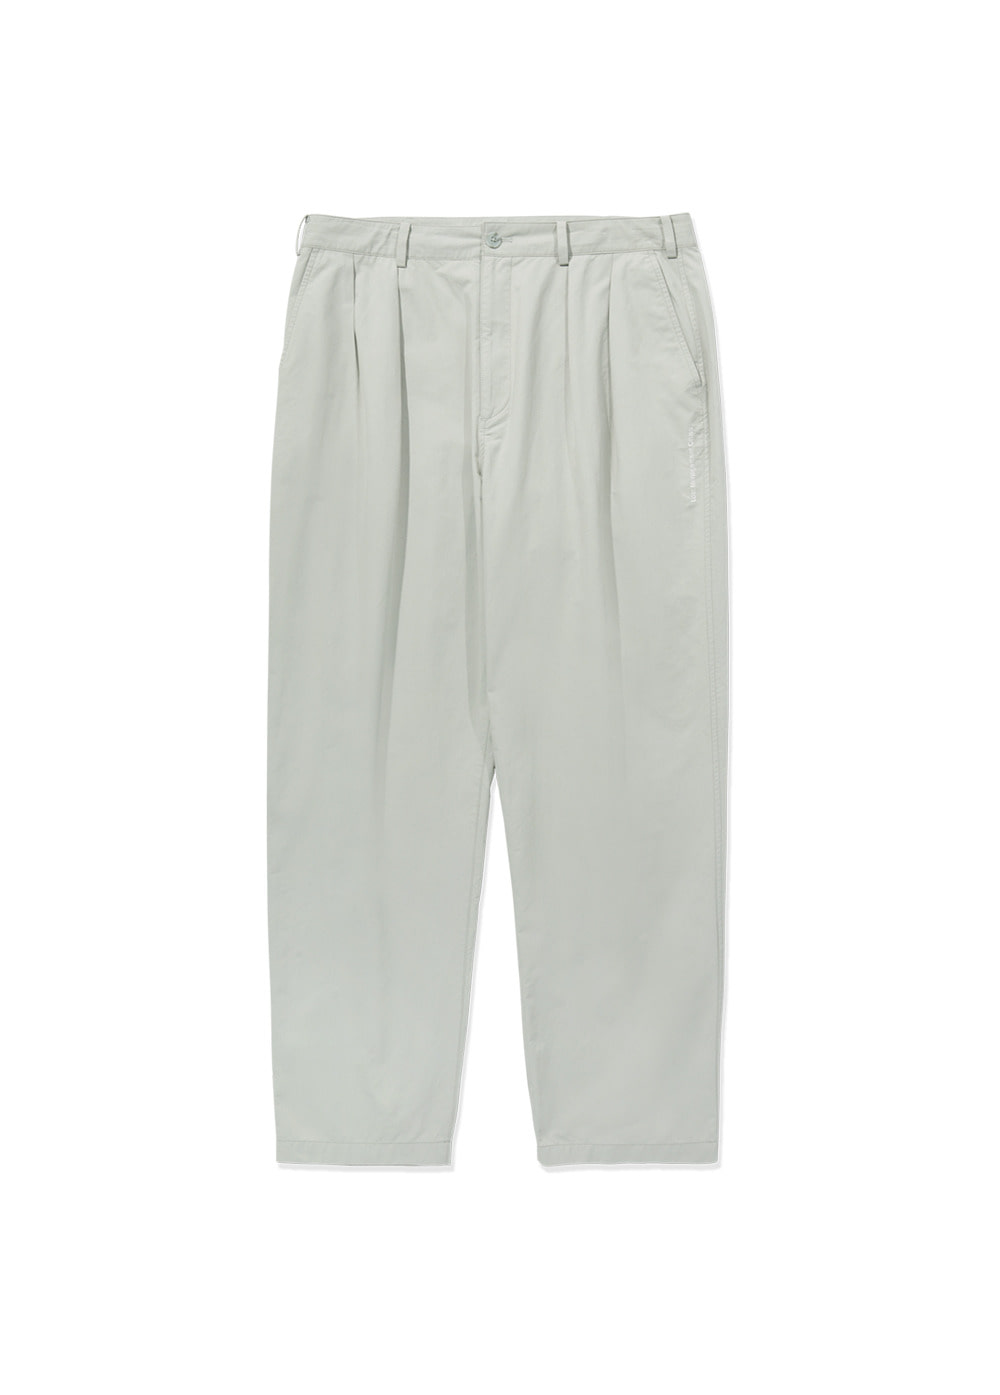 LMC DOUBLE PLEATED EASY TROUSER lt. gray